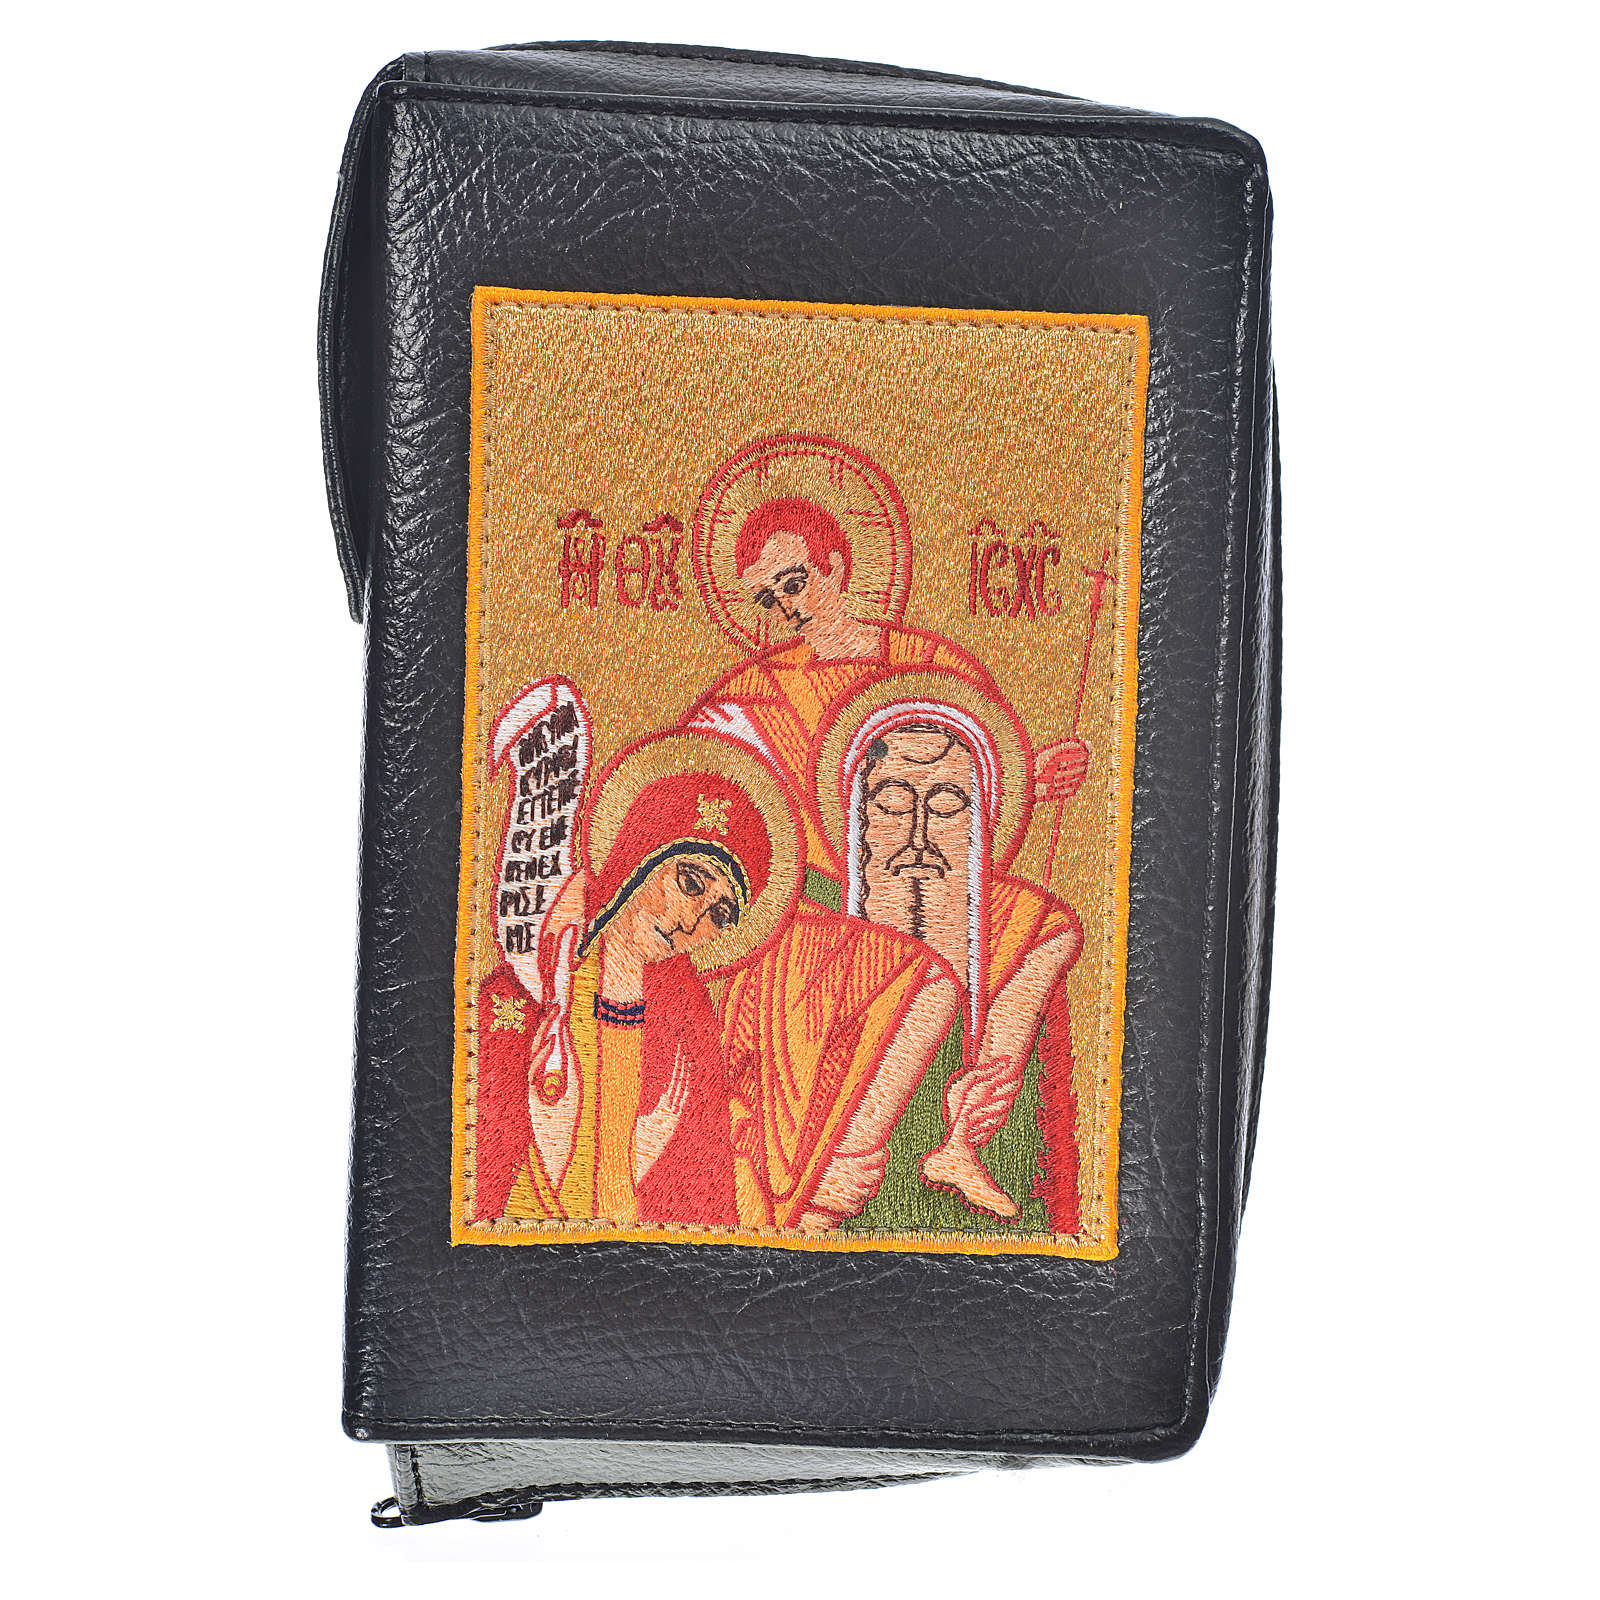 English edition of The New Jerusalem Bible Hardcover with the Holy Family of Kiko image in leather imitation 4